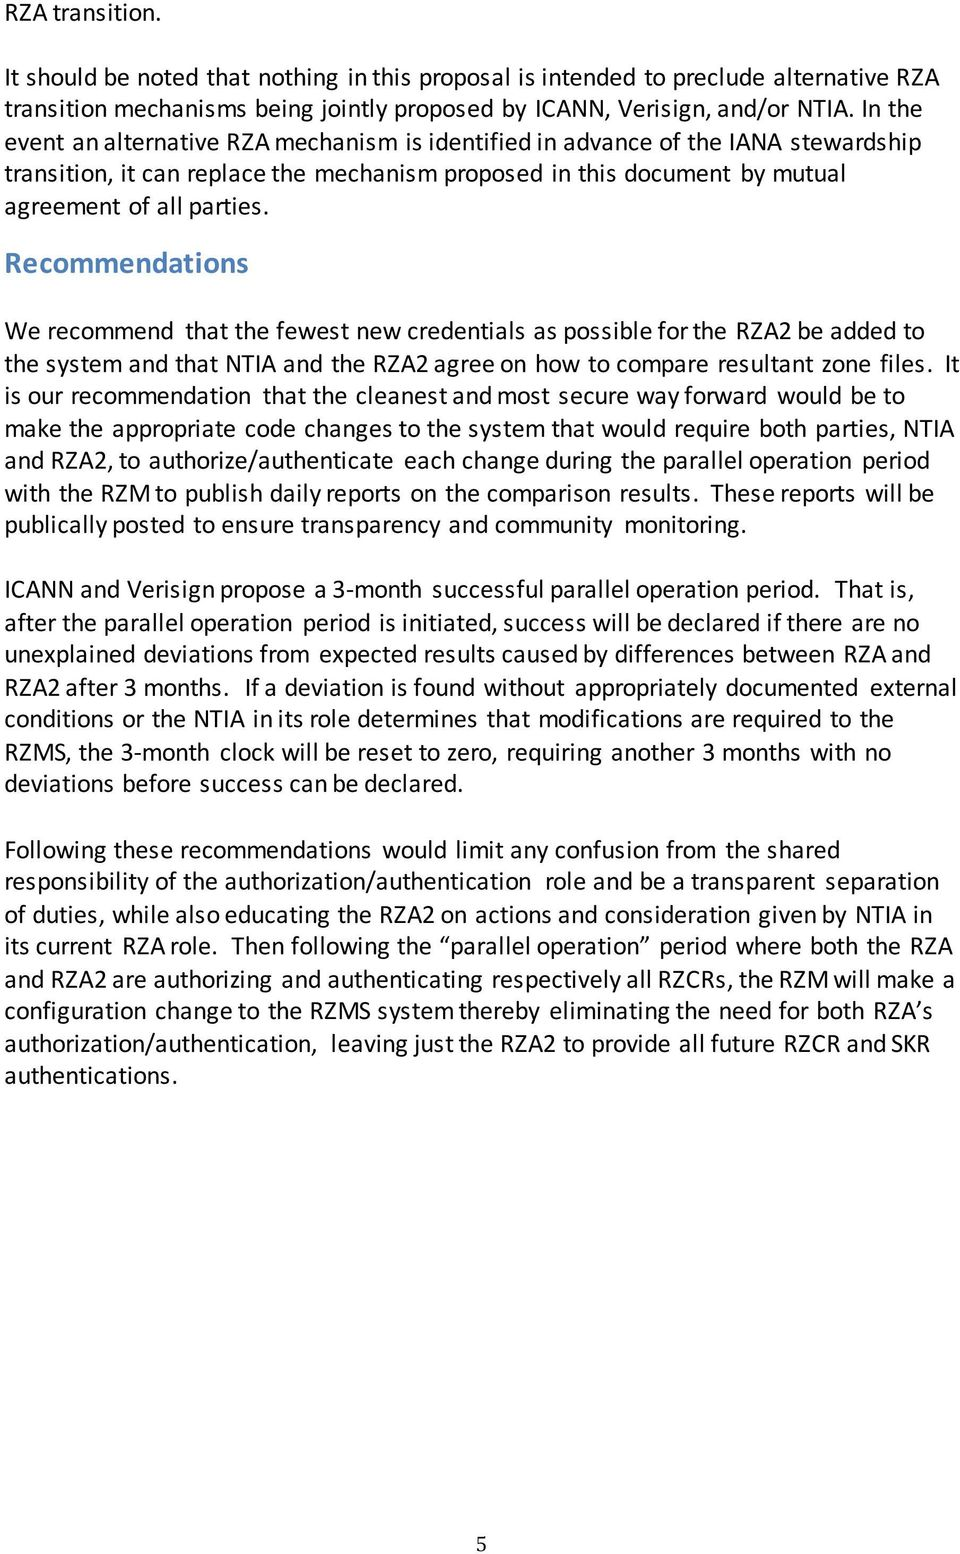 Recommendations We recommend that the fewest new credentials as possible for the RZA2 be added to the system and that NTIA and the RZA2 agree on how to compare resultant zone files.